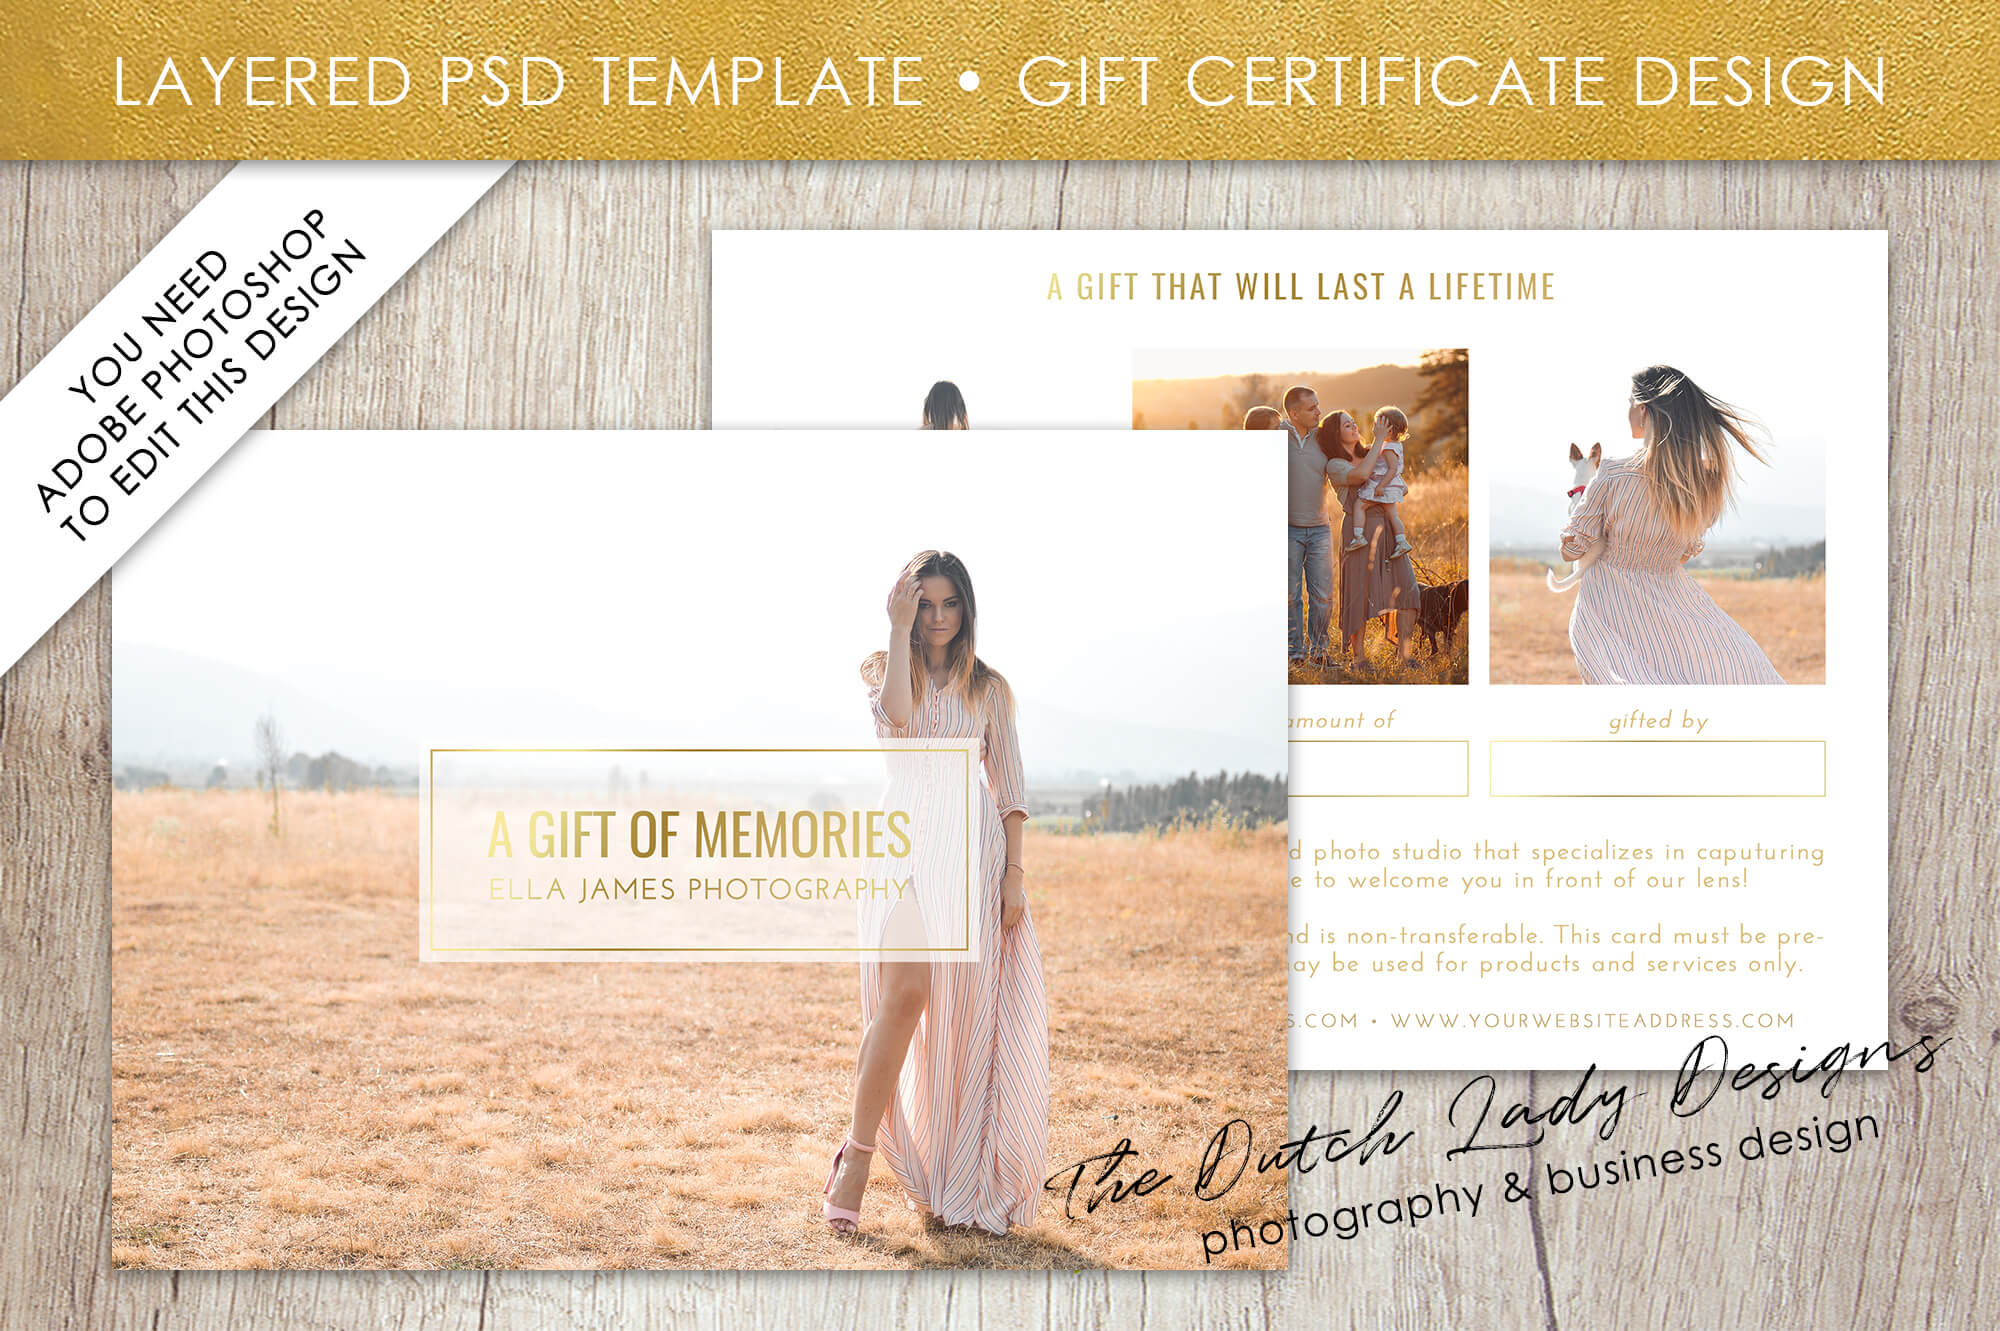 Photography Gift Certificate Template - Photo Gift Card - Layered .psd  Files - Design #31 in High Resolution Certificate Template